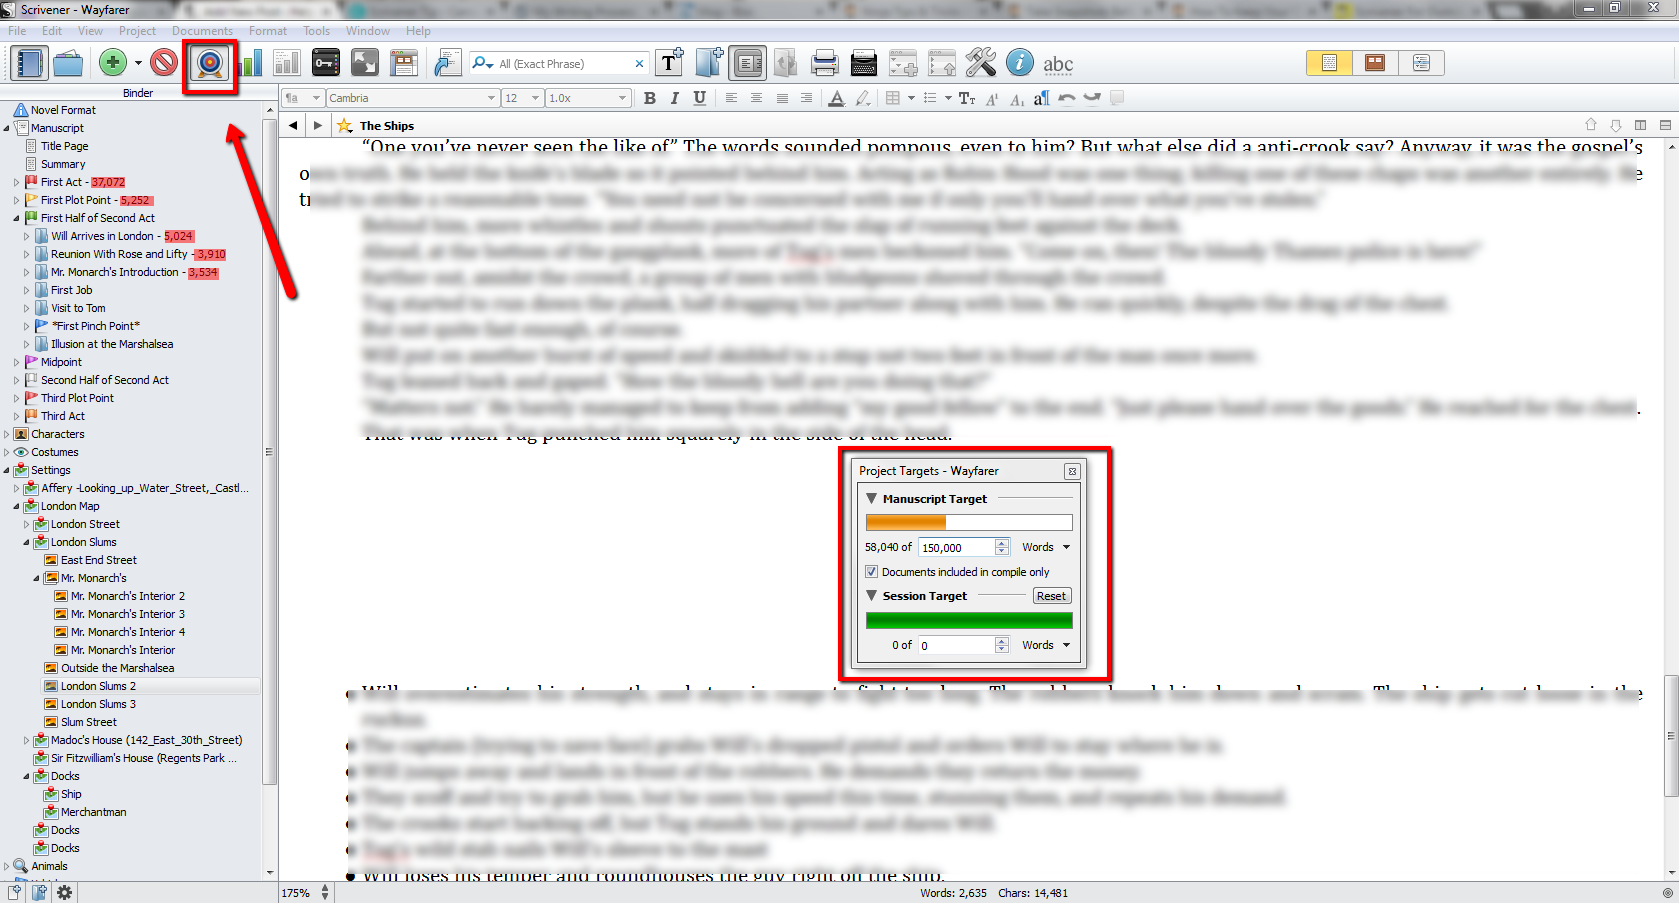 Writing_Process_Scrivener_Project_Targets